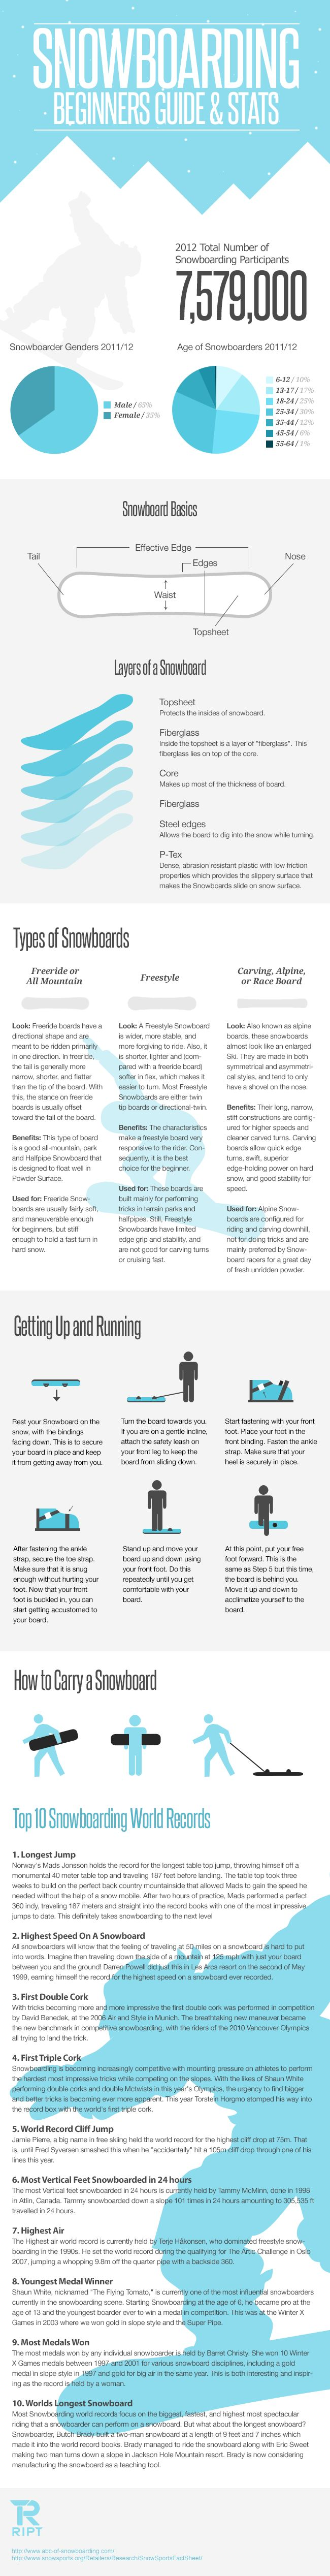 Guide To Snowboarding [infographic] via @Tribesports